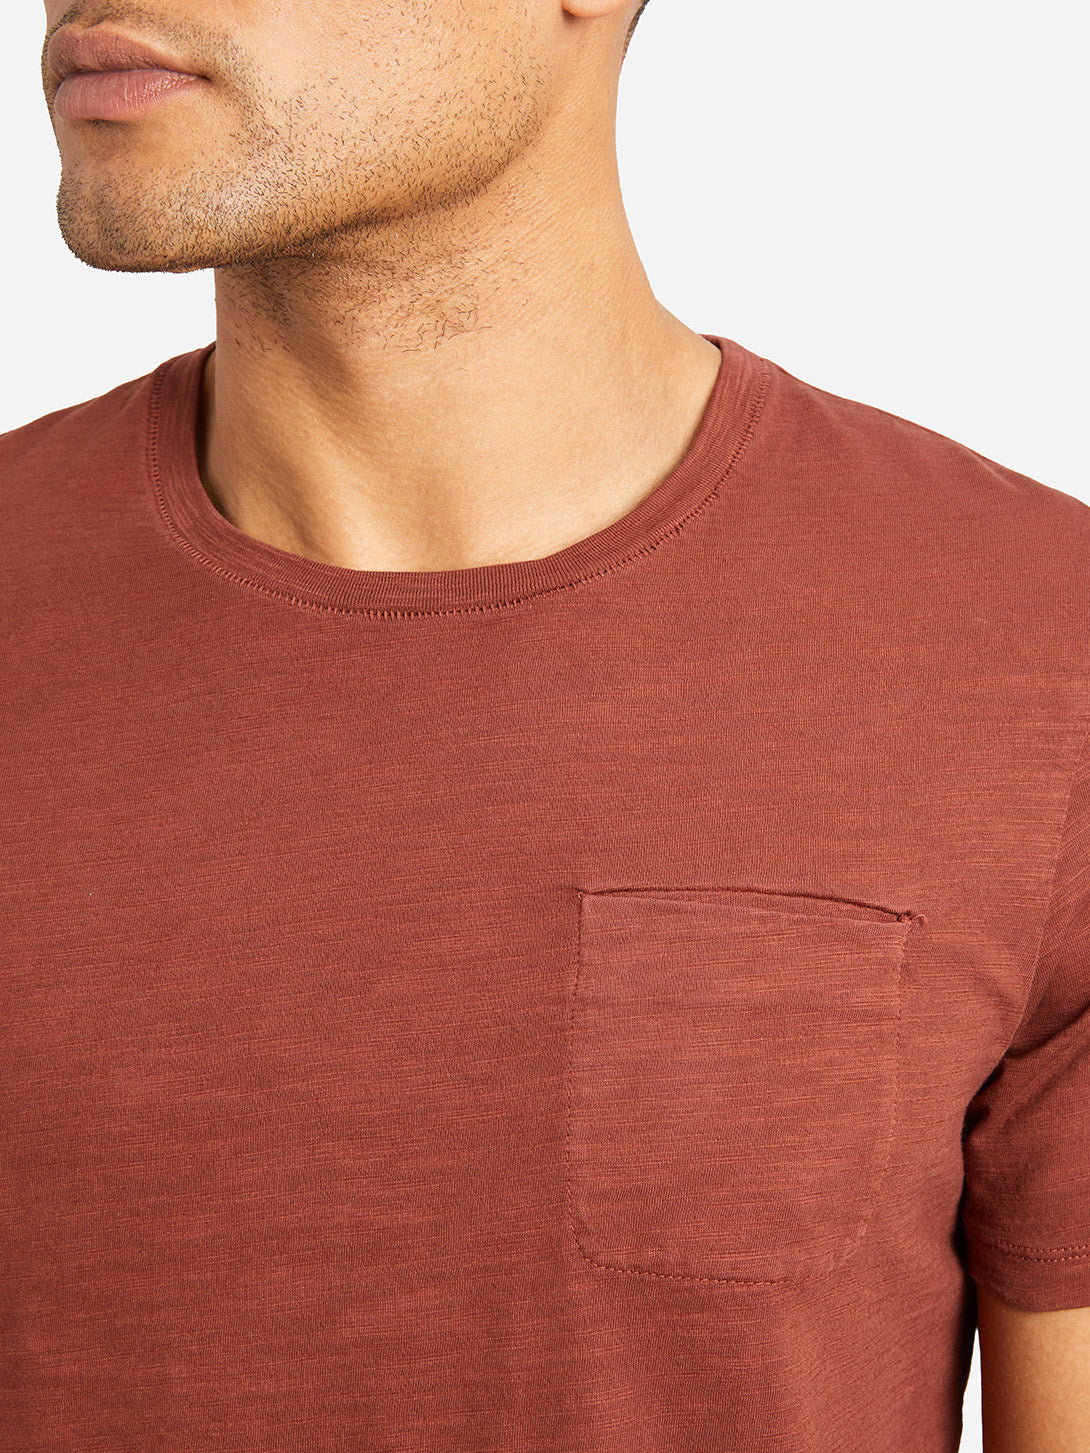 BURNT BRICK RED sleeve pocket crew neck t shirt bowery slub crew neck tee burntbrick